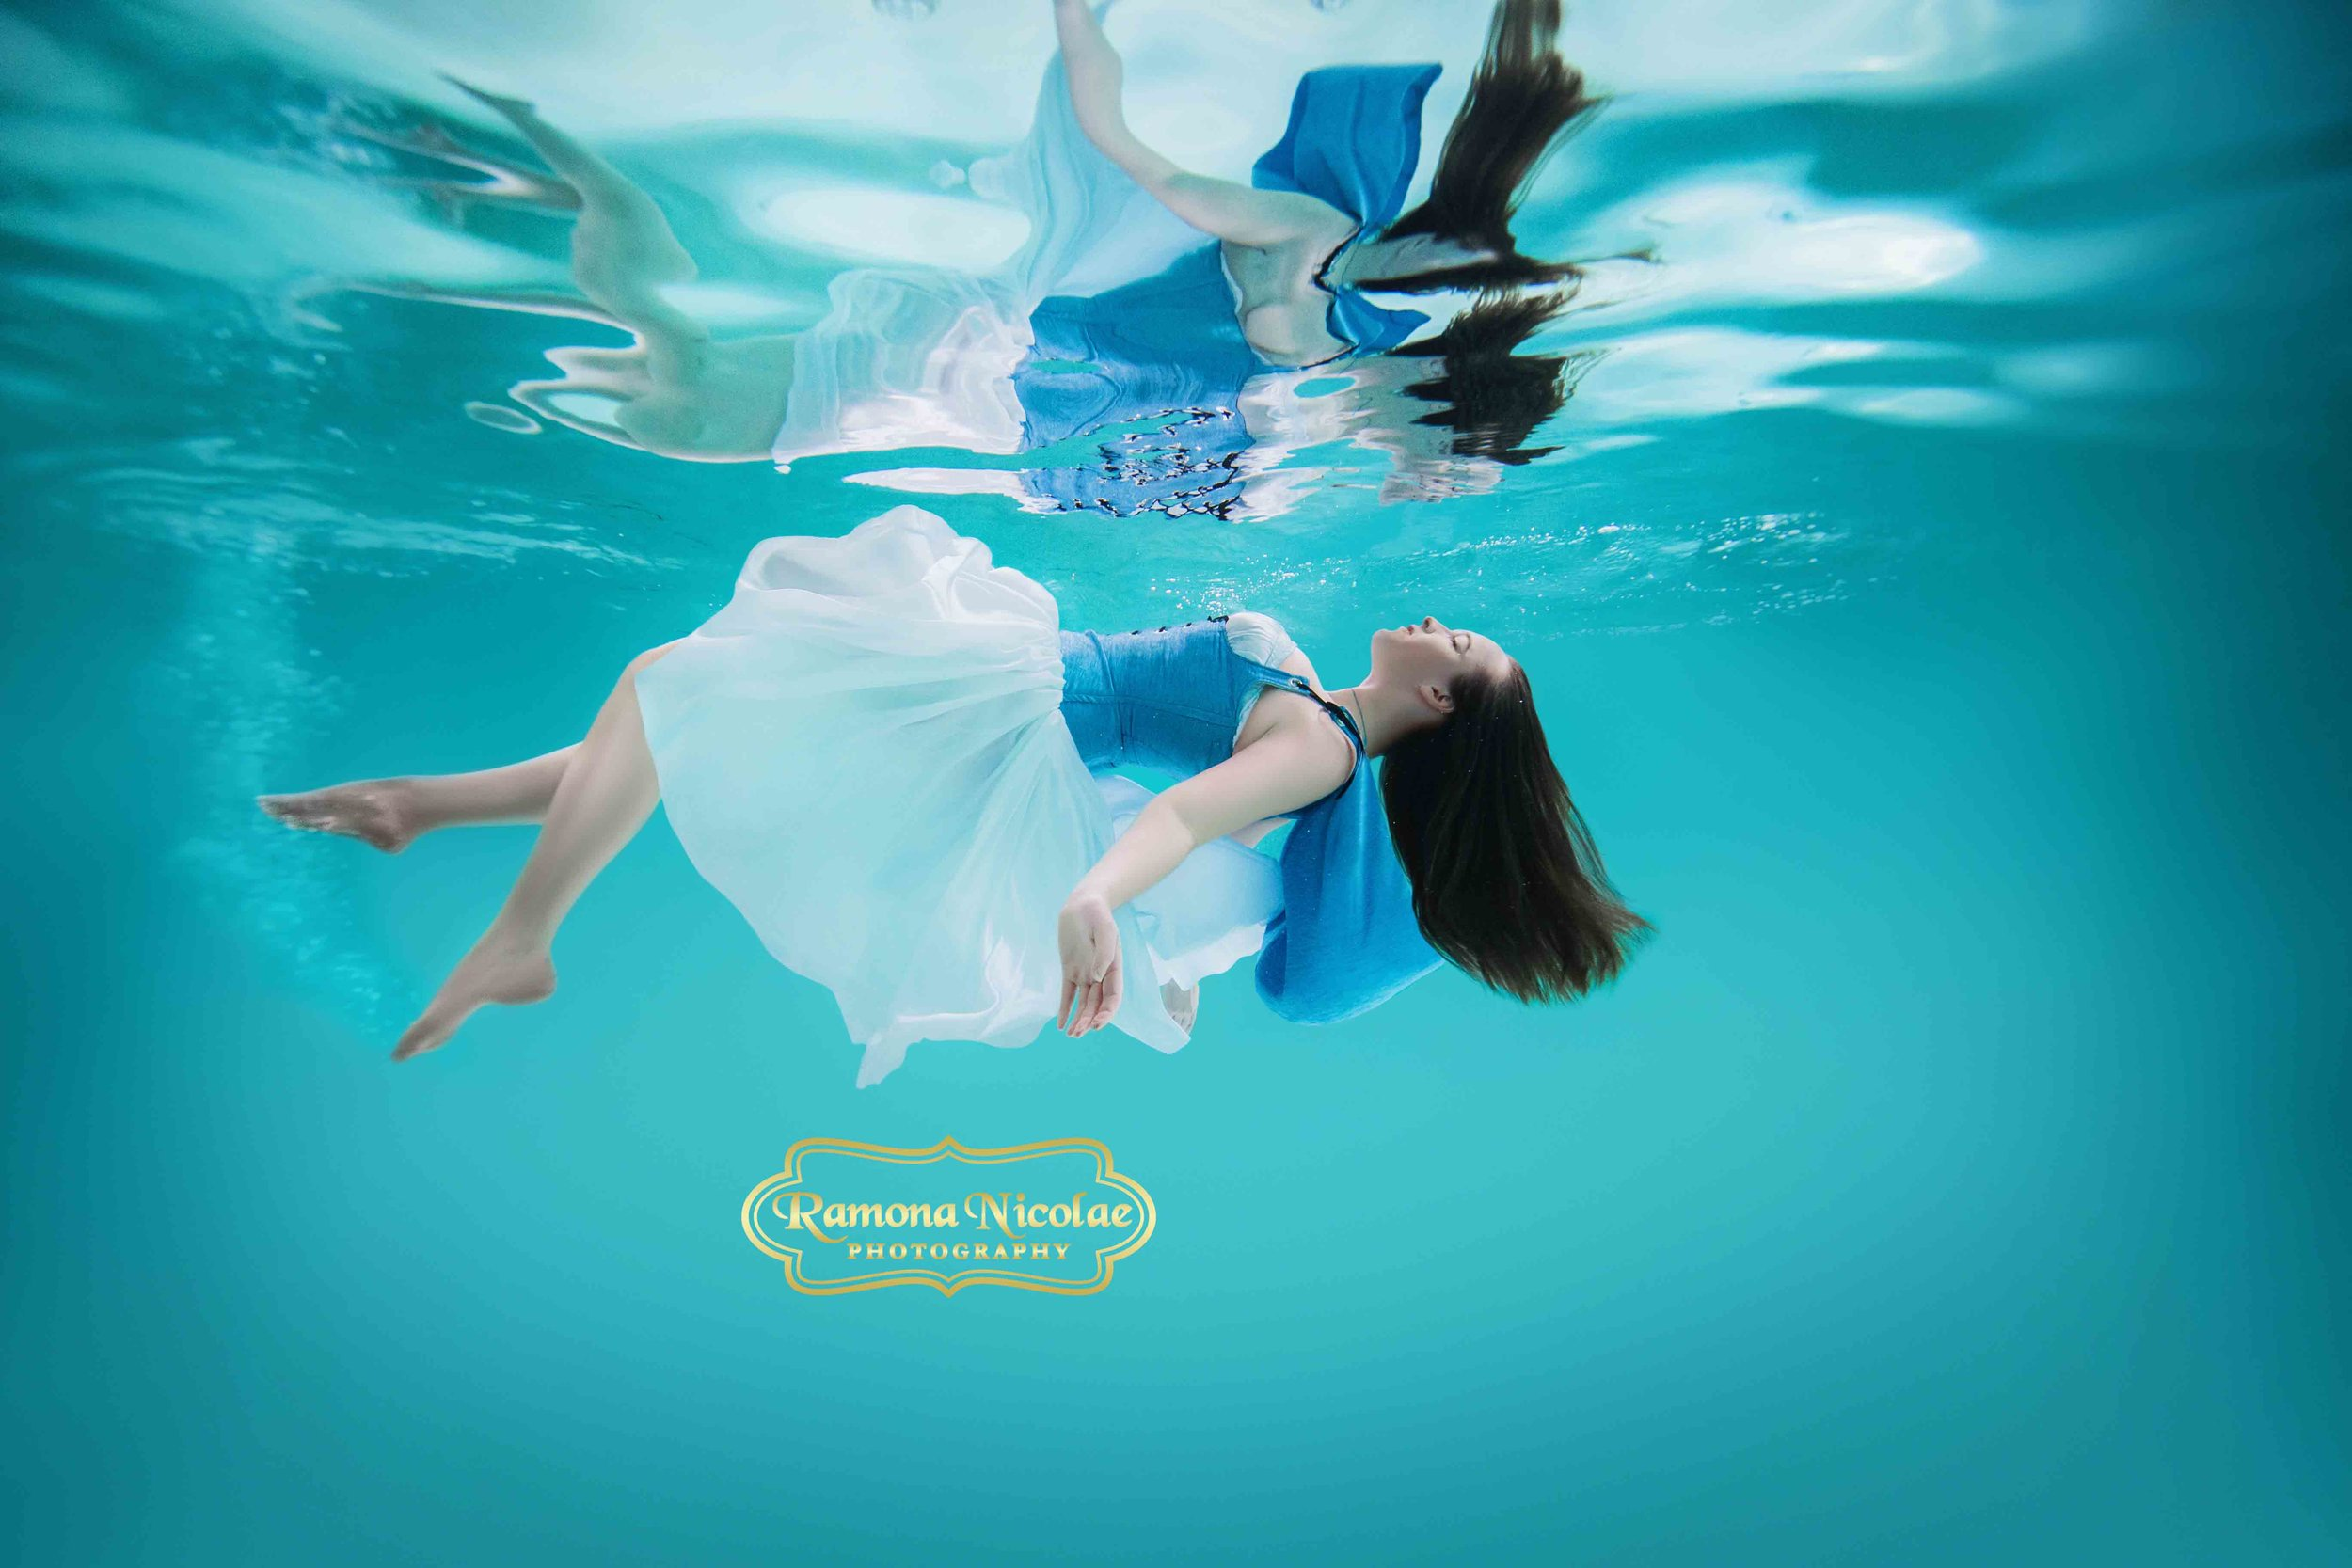 Underwater photoshoot in Myrtle Beach by Ramona Nicolae Photography underwater photography submerged photos